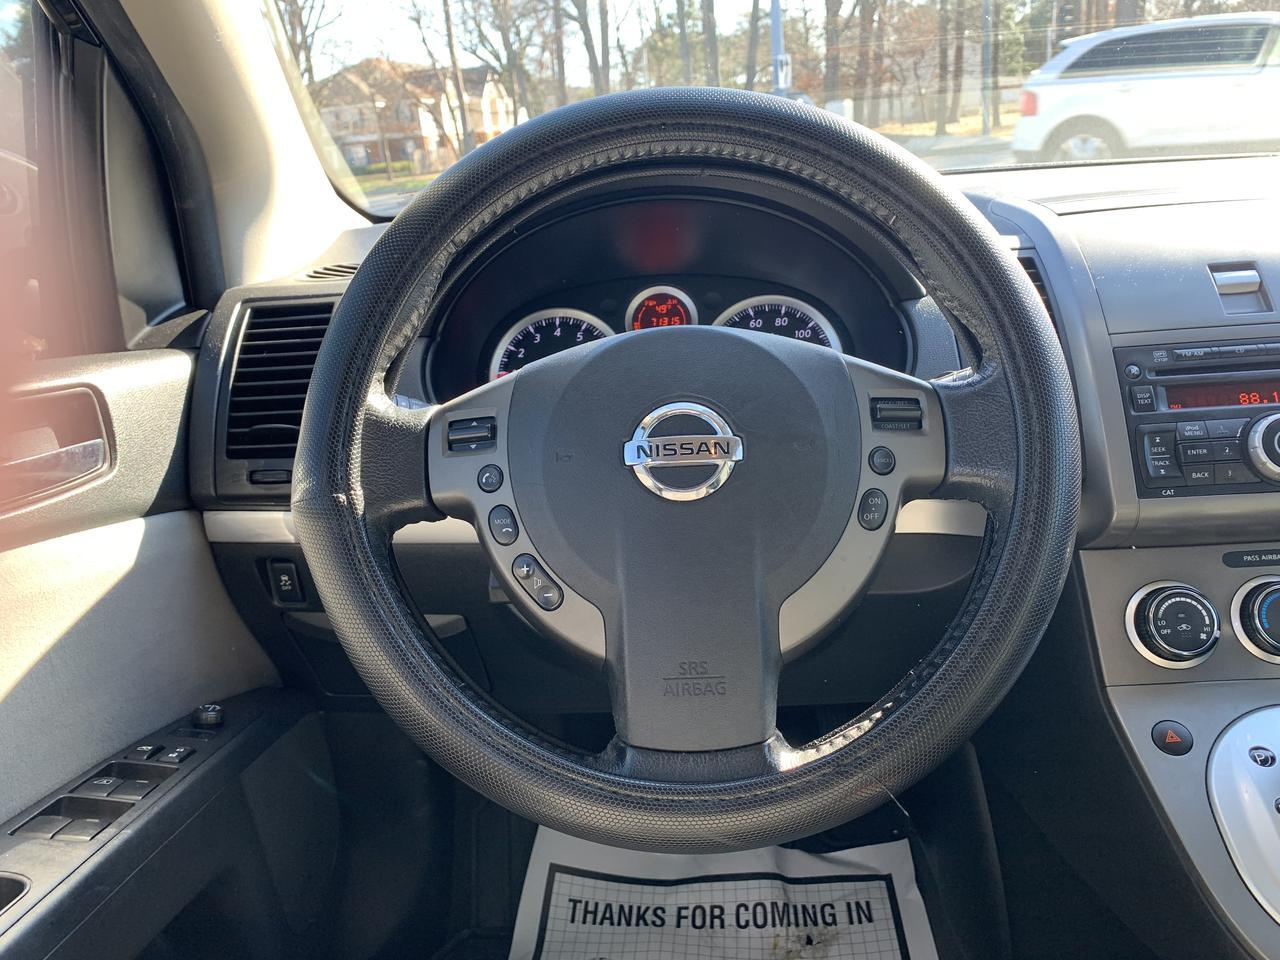 2012 NISSAN SENTRA SR, WARRANTY, KEYLESS ENTRY, KEYLESS START, AUX PORT, 1 OWNER! Norfolk VA